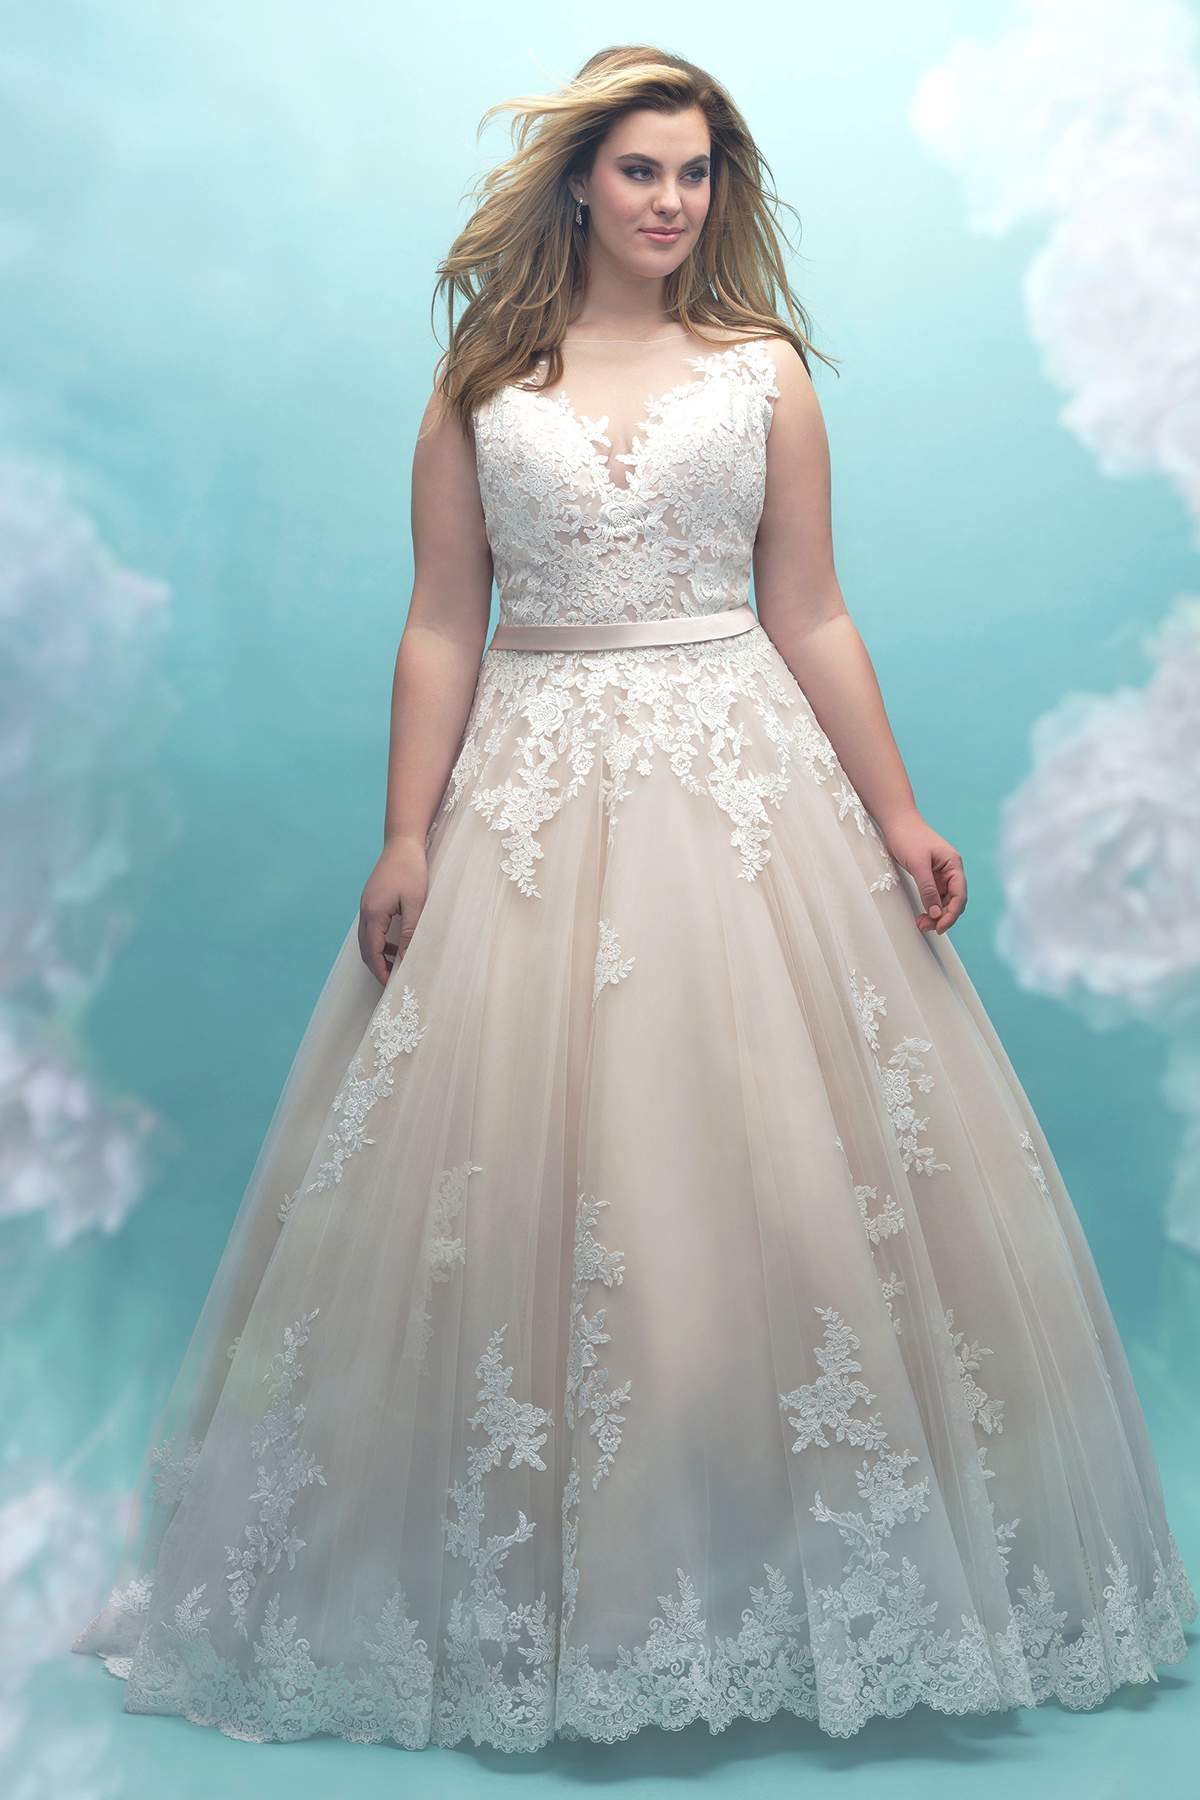 Style W405 by Allure Women - Find Your Dream Dress